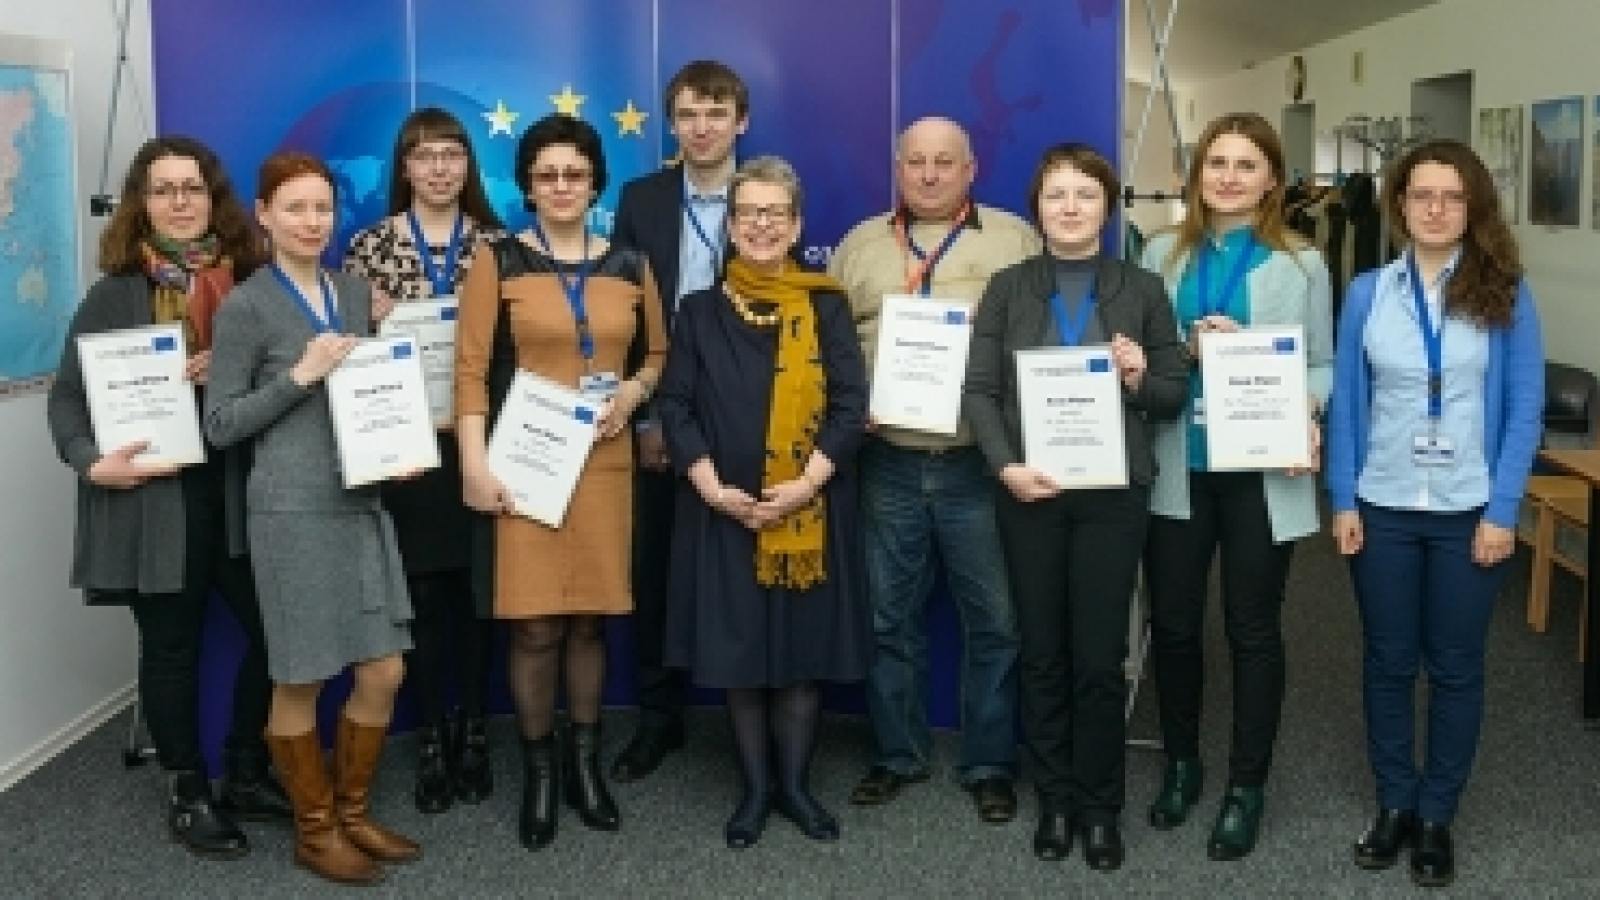 Belarus: journalists were rewarded for best stories on EU projects